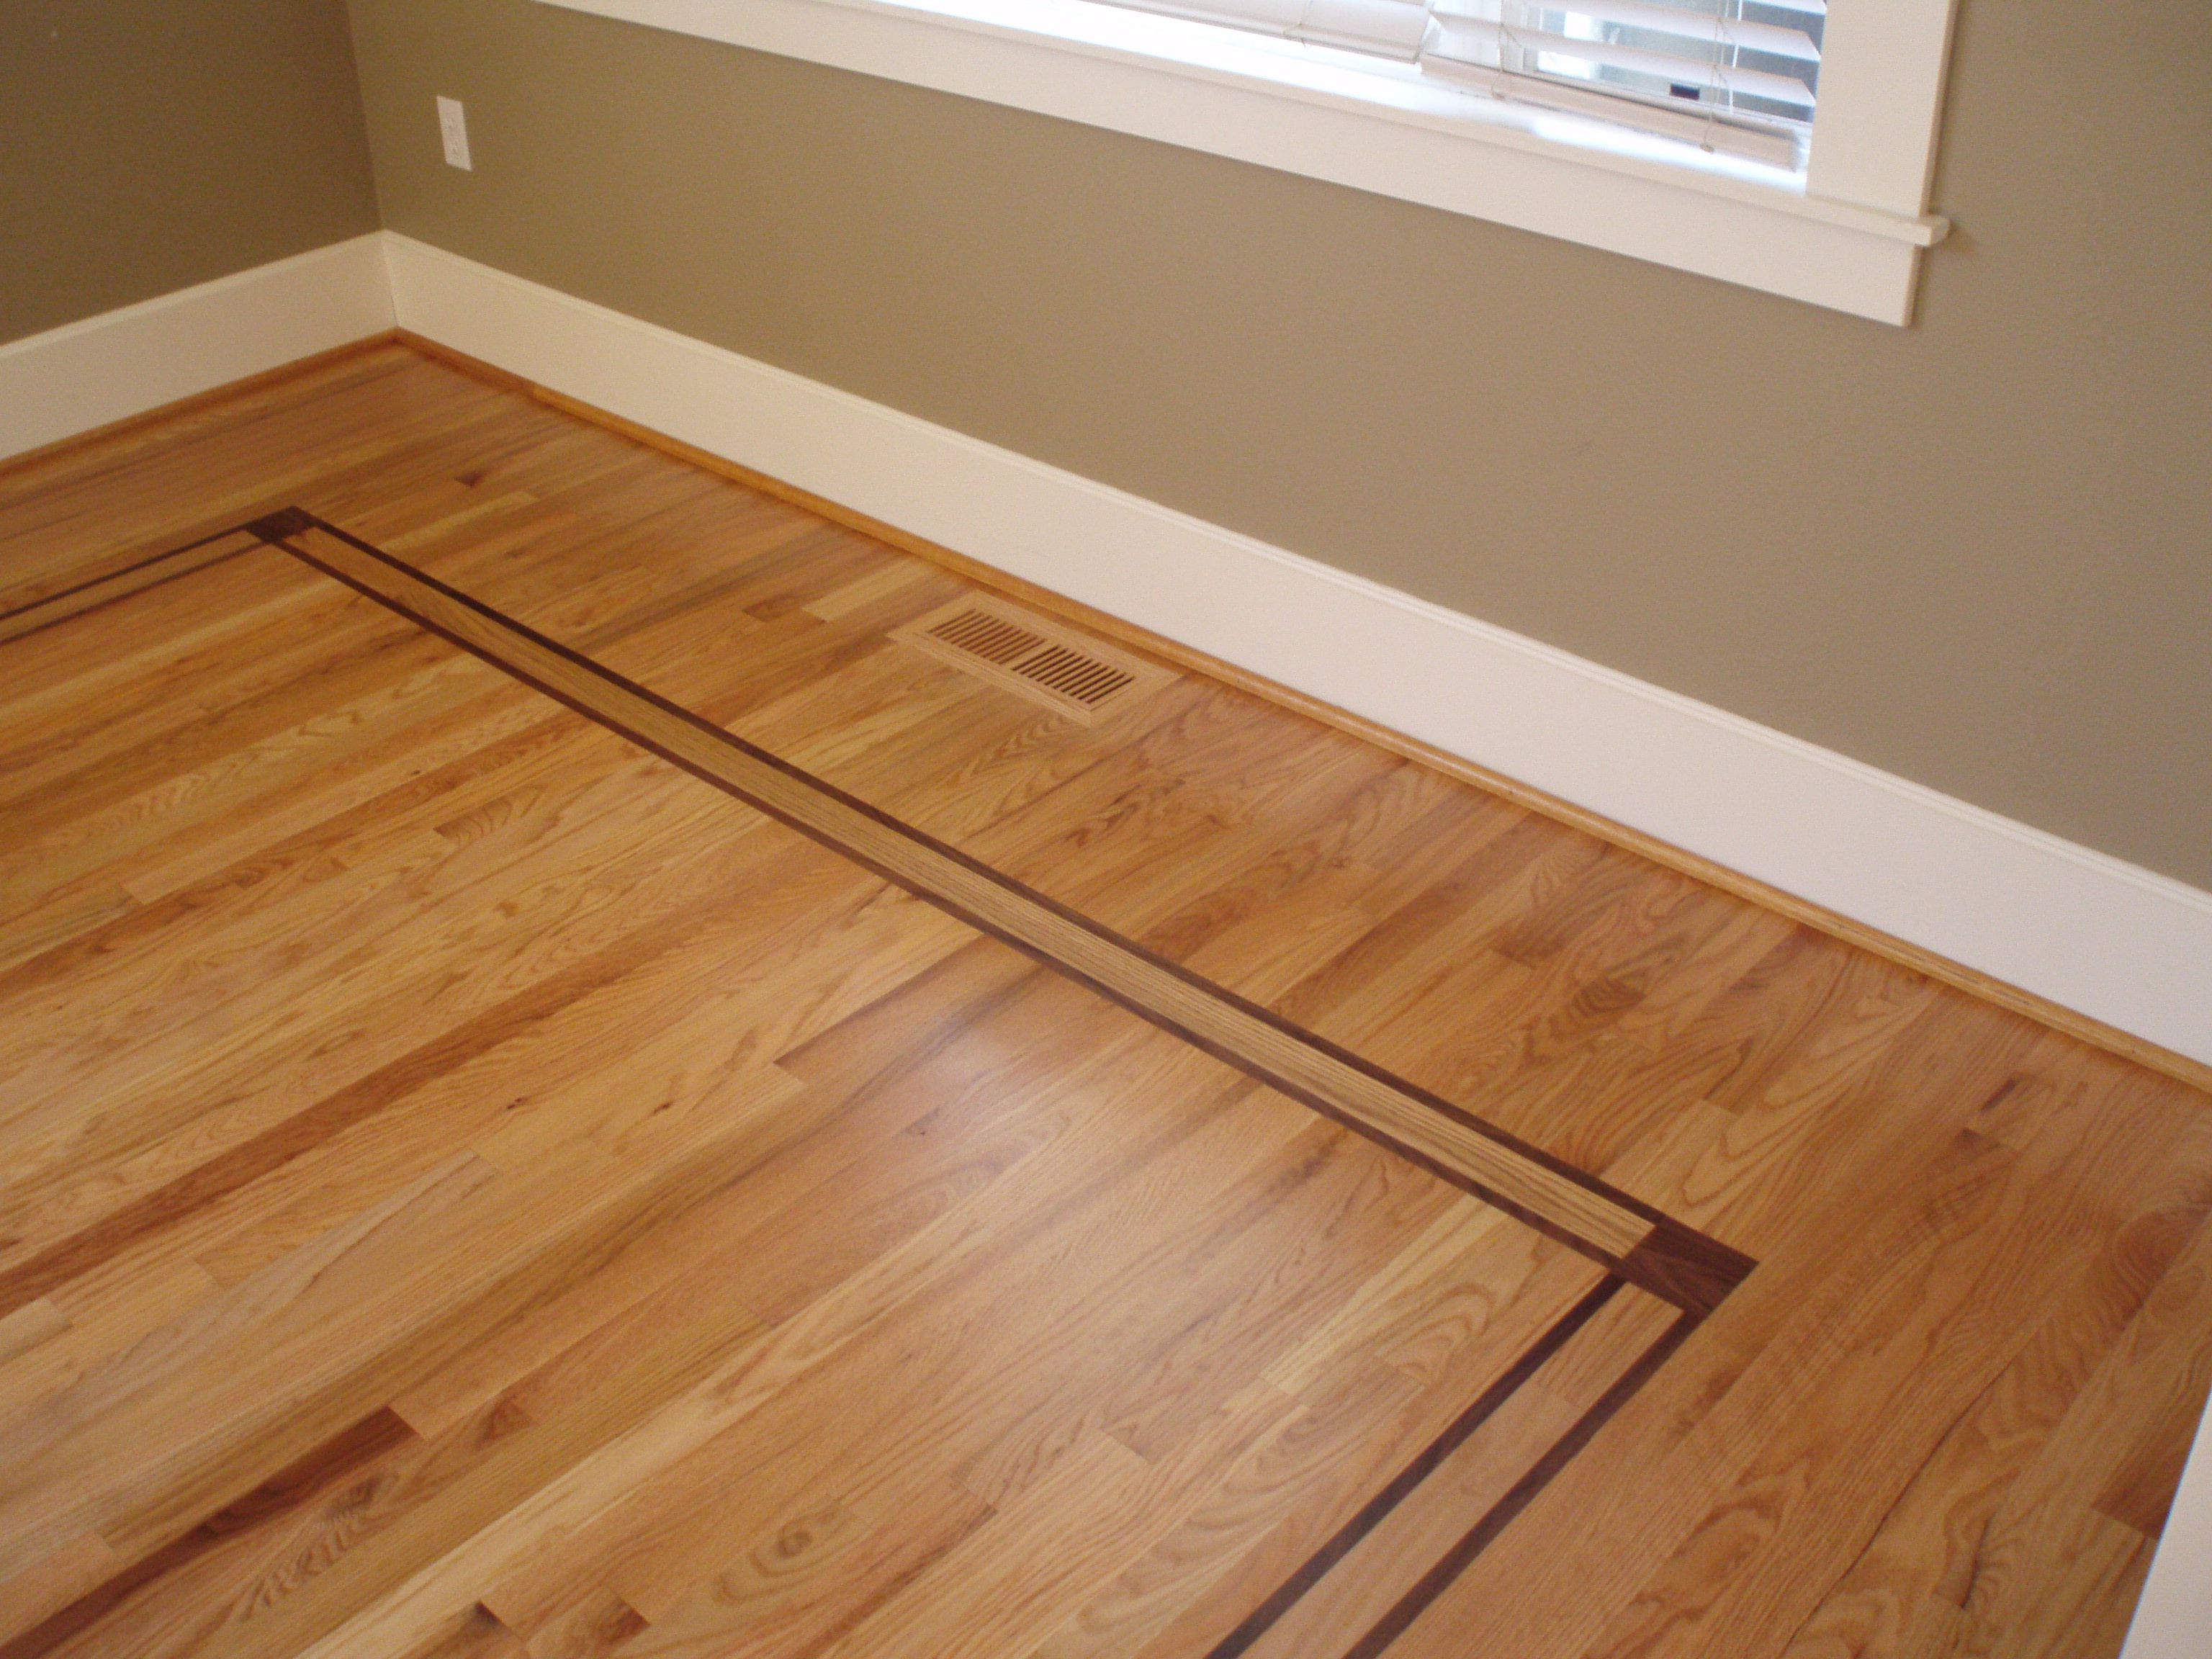 red oak hardwood flooring prices of inlay of walnut with red oak flooring www dominohardwoodfloors com within inlay of walnut with red oak flooring www dominohardwoodfloors com portland or domino hardwood floors inc